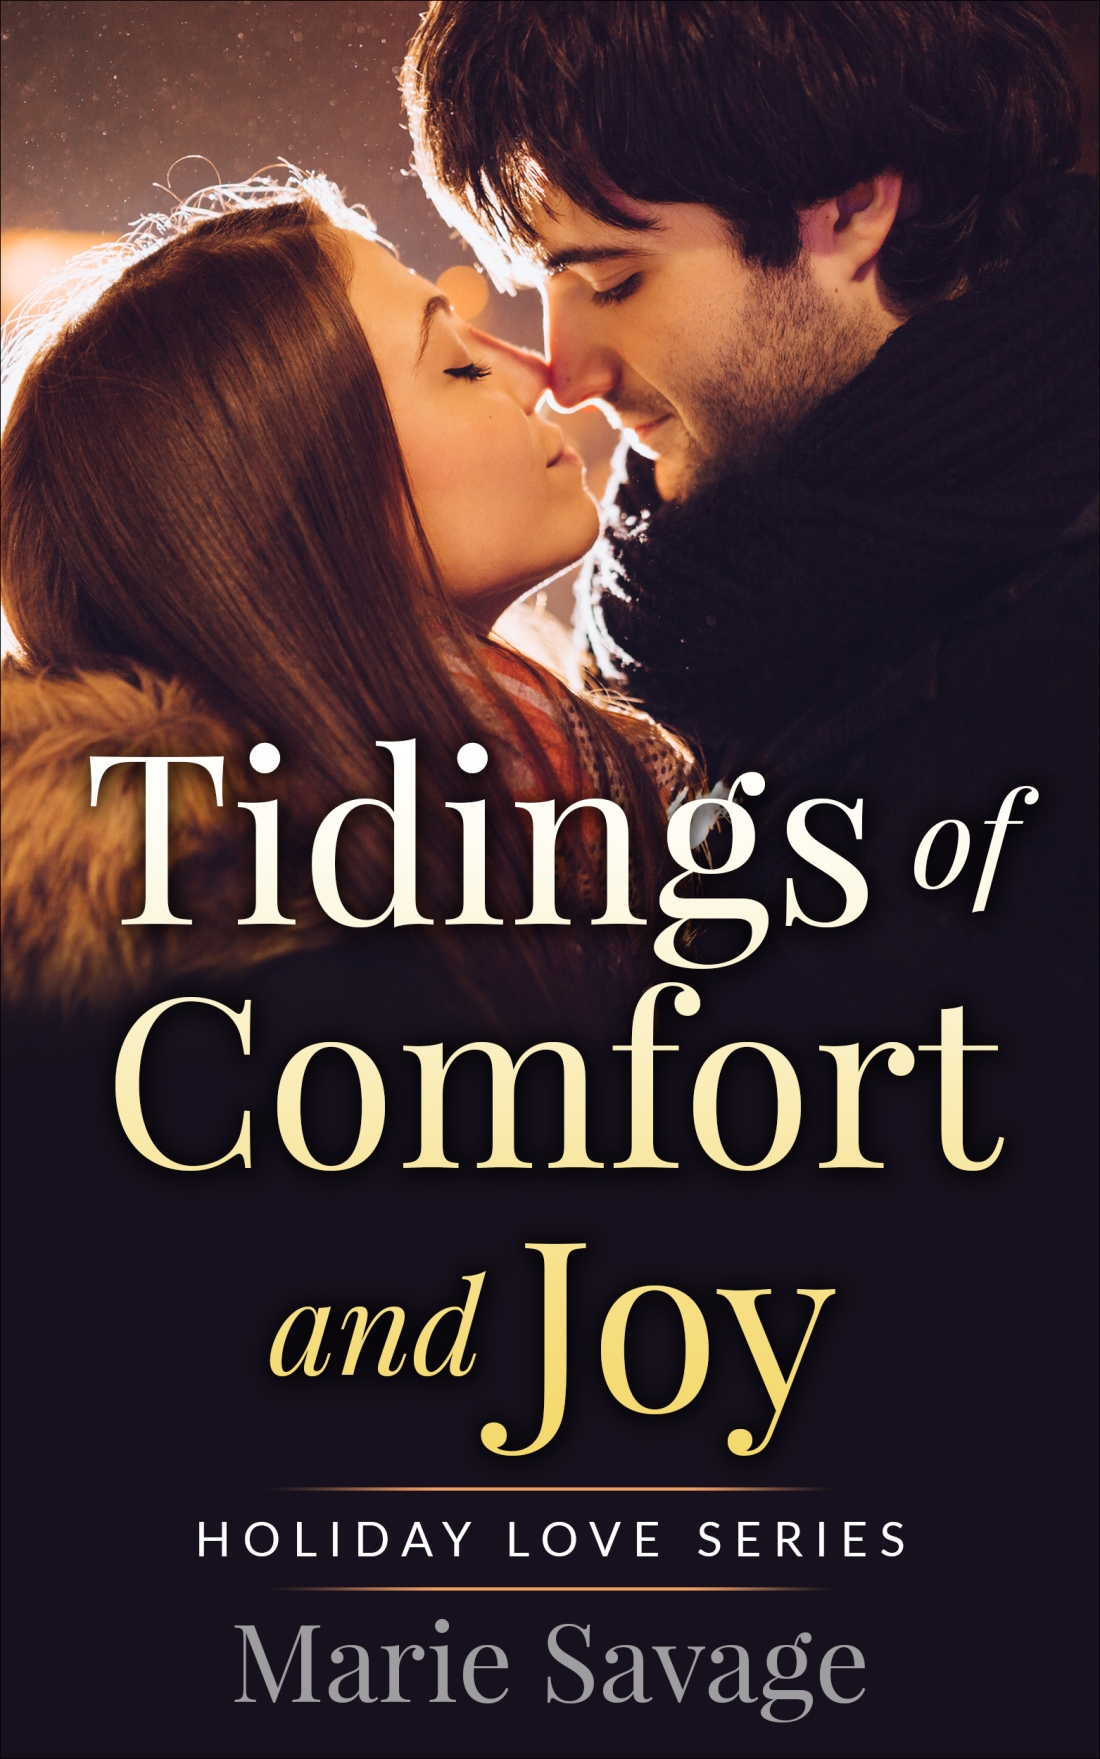 tduck1991_Tidings_of_Comfort_and_Joy